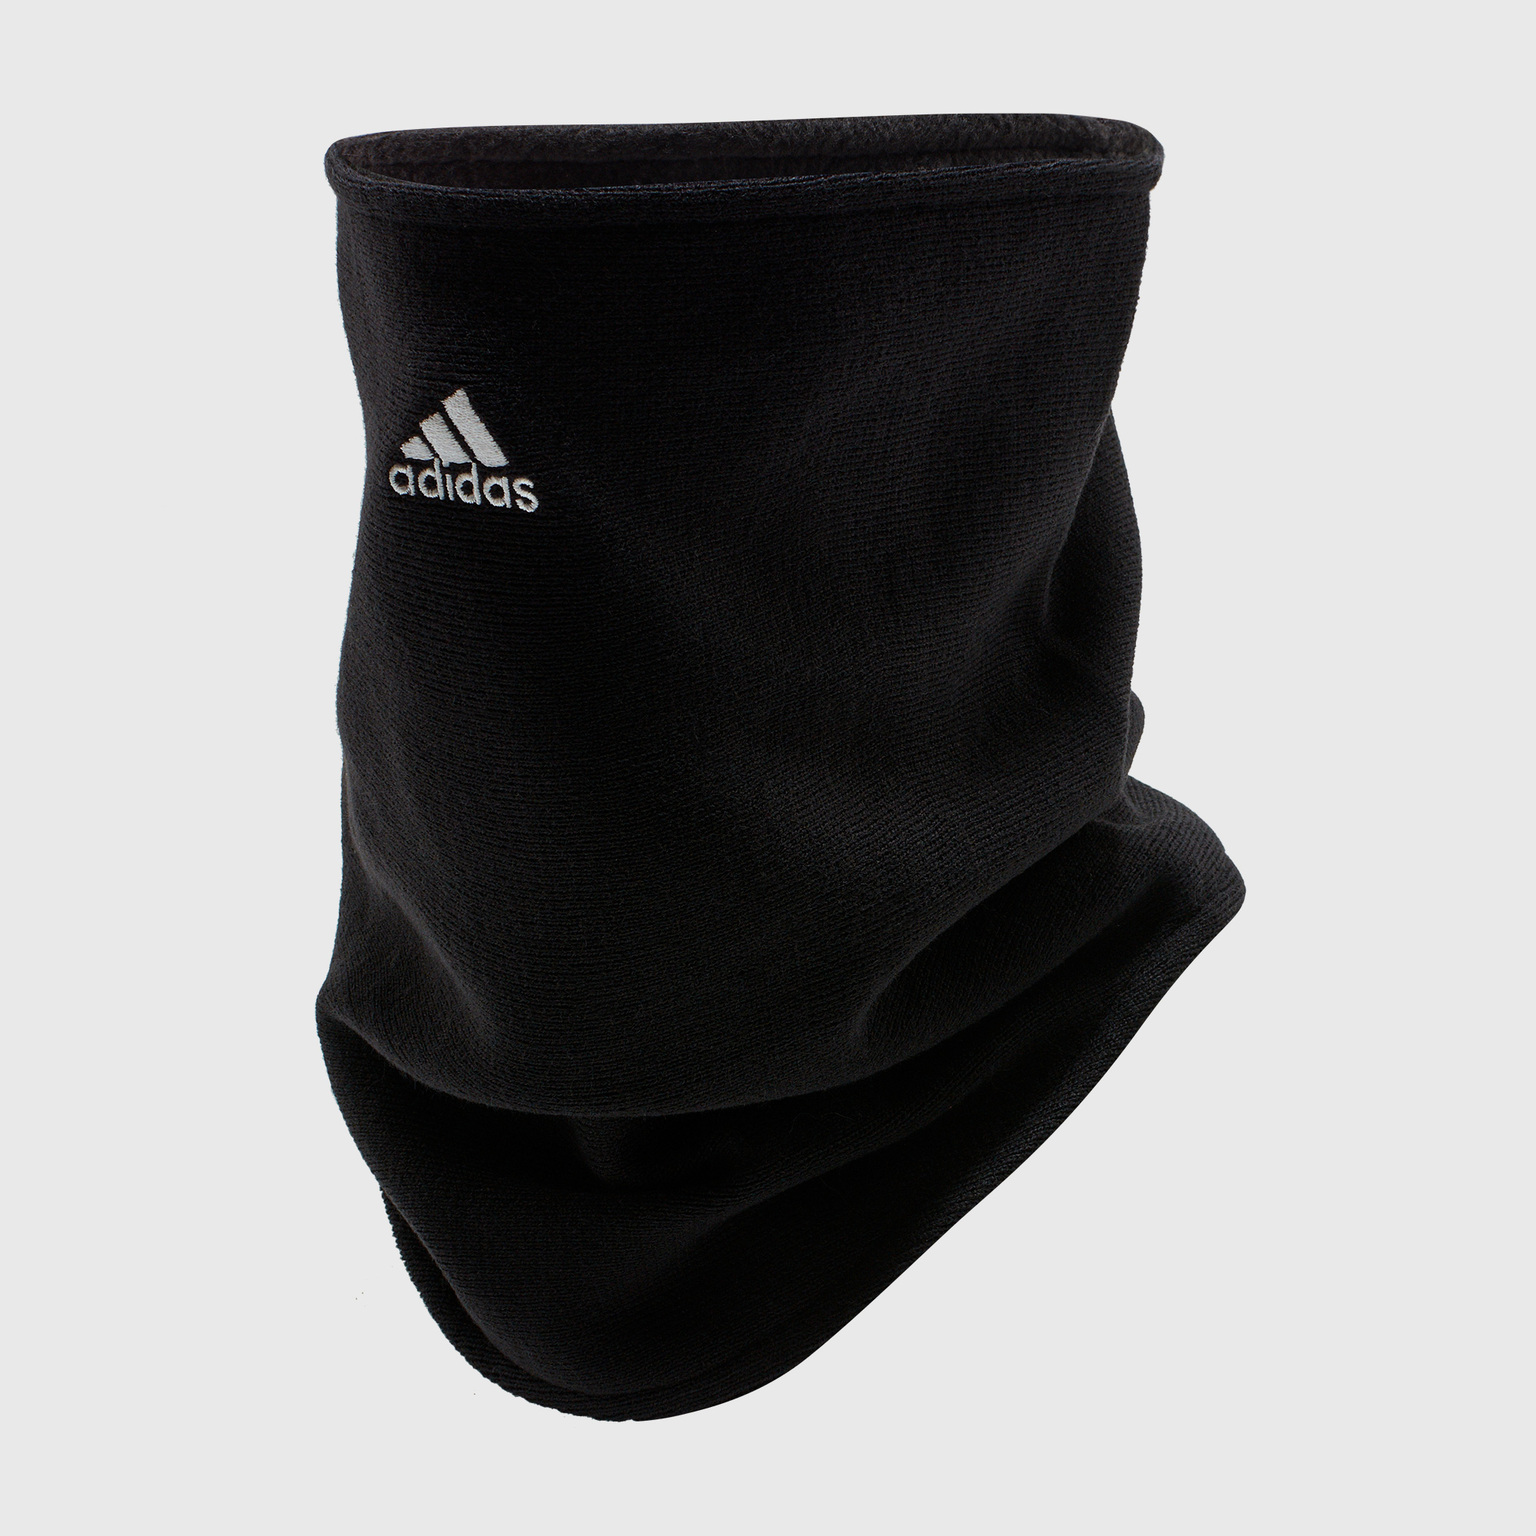 Повязка на шею (Гейтор) Adidas Team NeckWarmer W67131 повязка на шею гейтор nike reversible neck warmer n wa 53 072 os